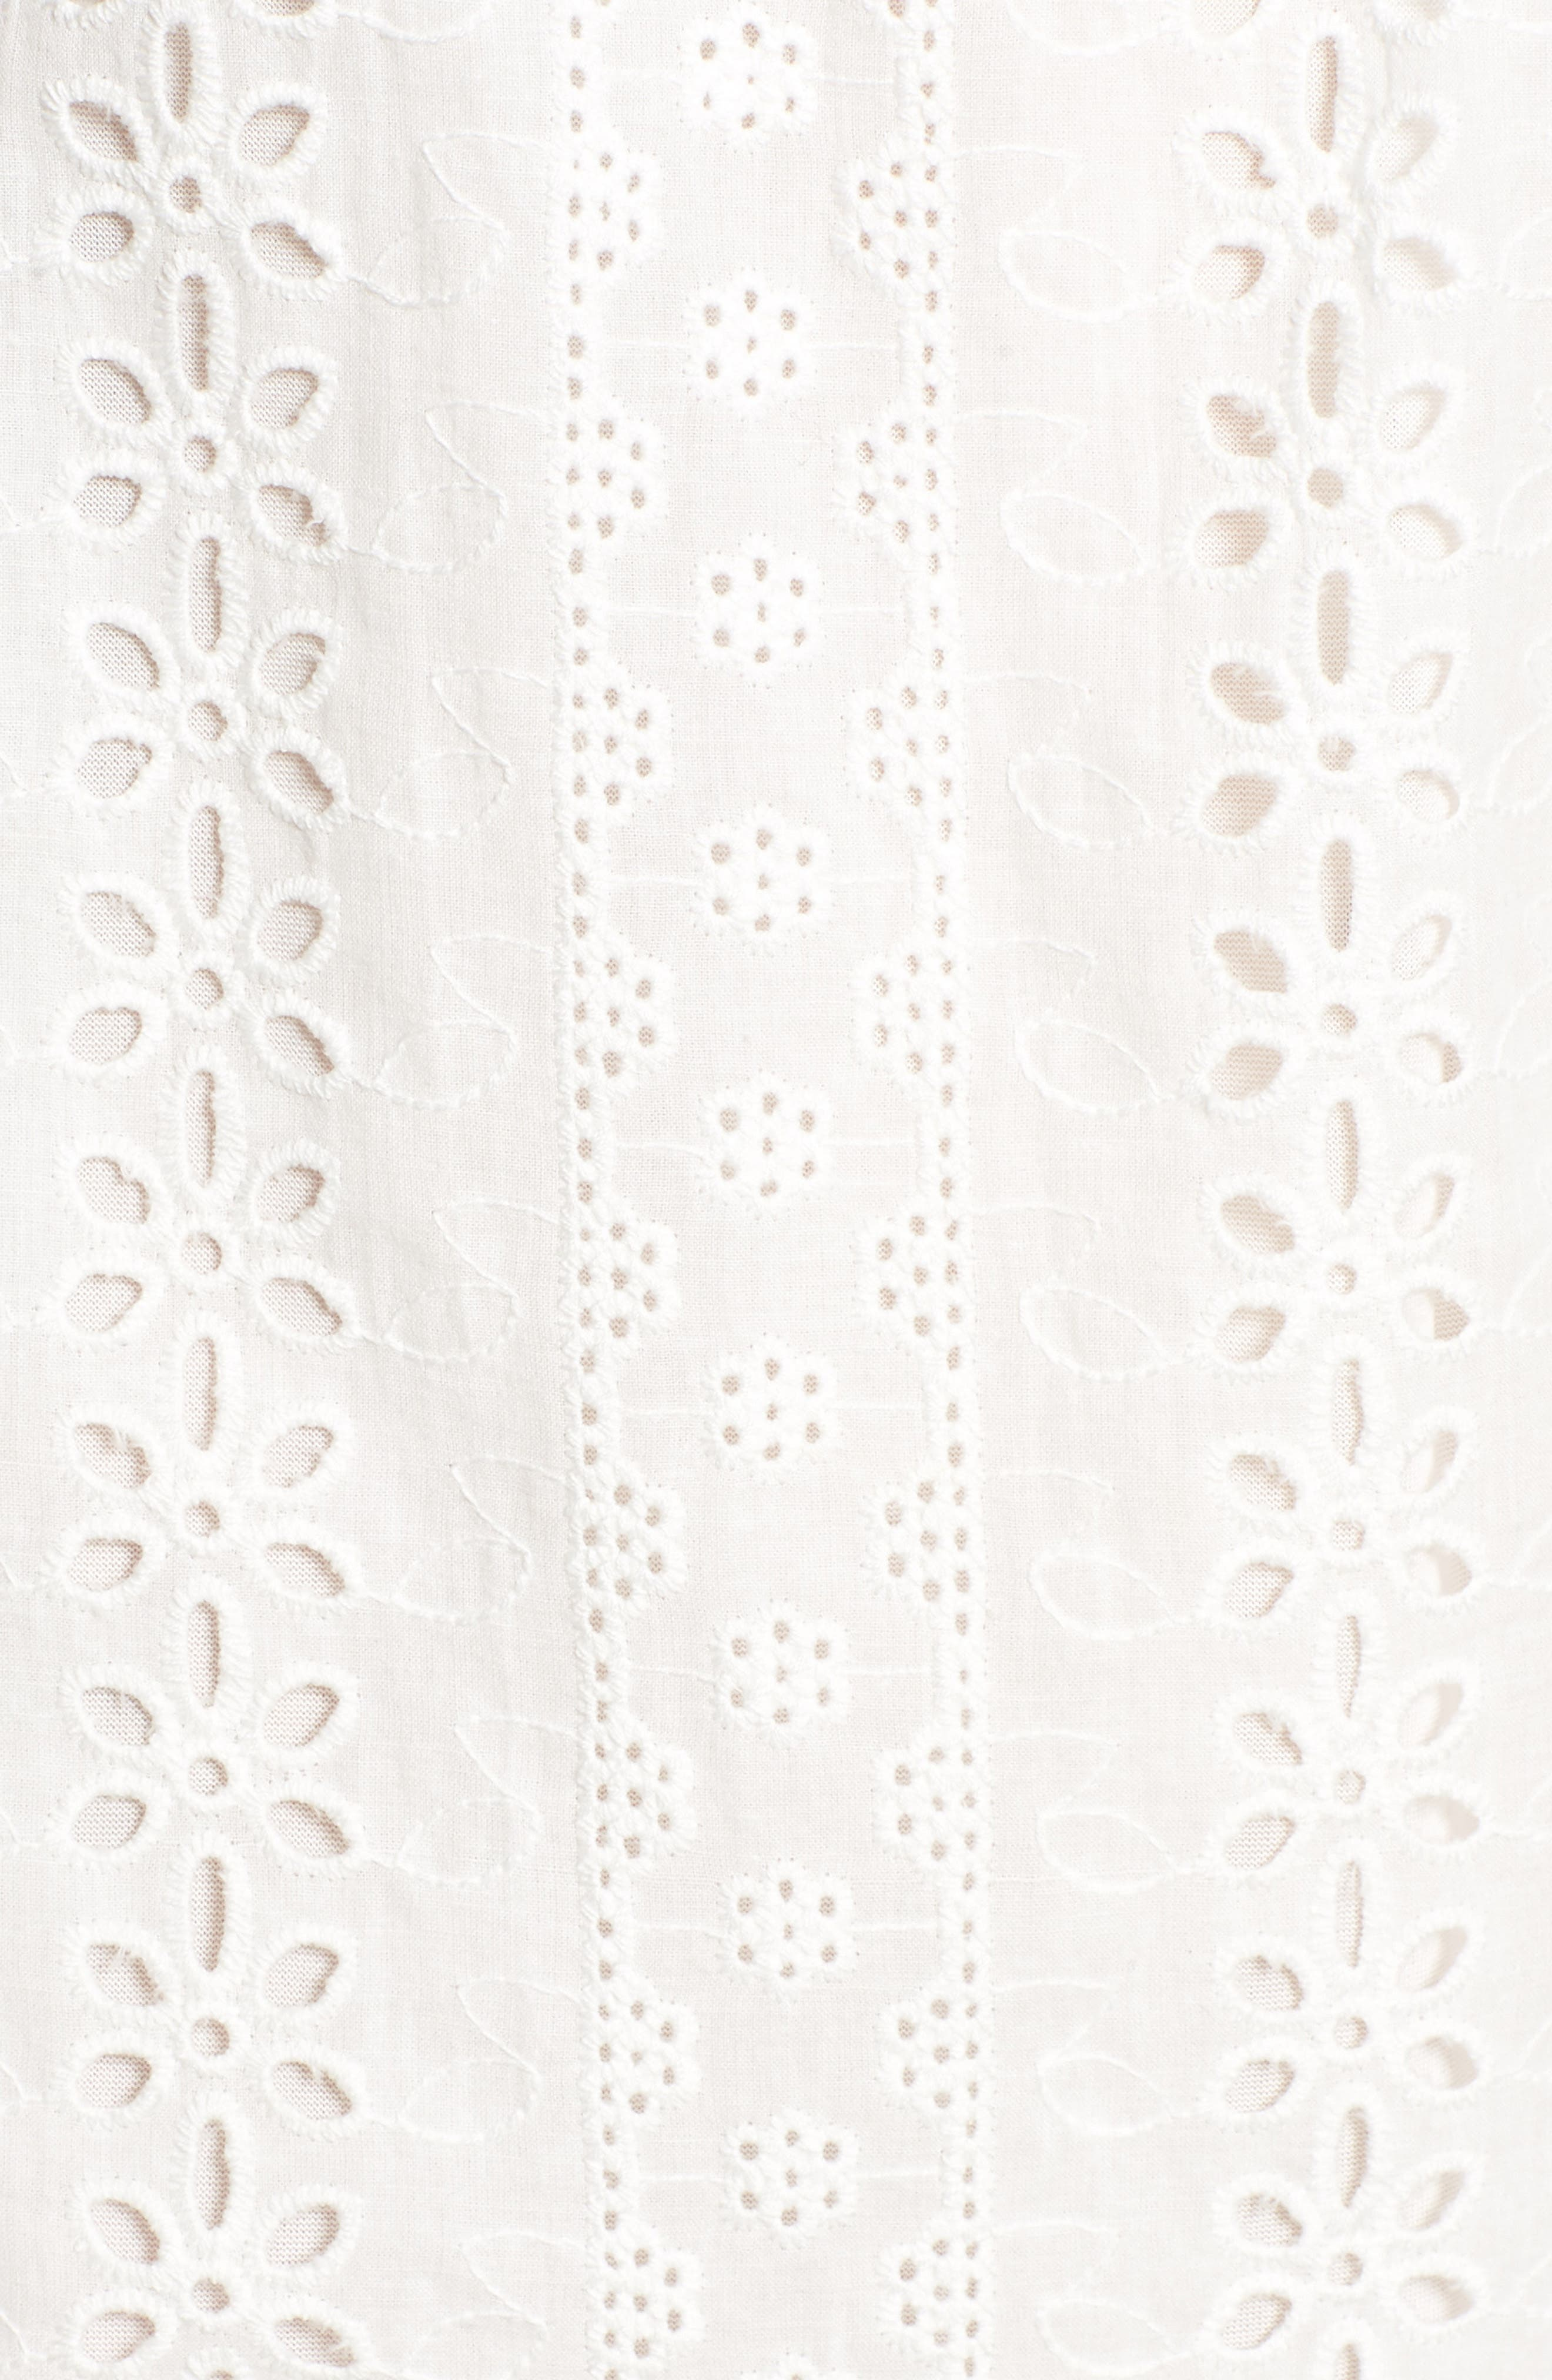 Bishop + Young Eyelet Ruffle Off the Shoulder Dress,                             Alternate thumbnail 6, color,                             100